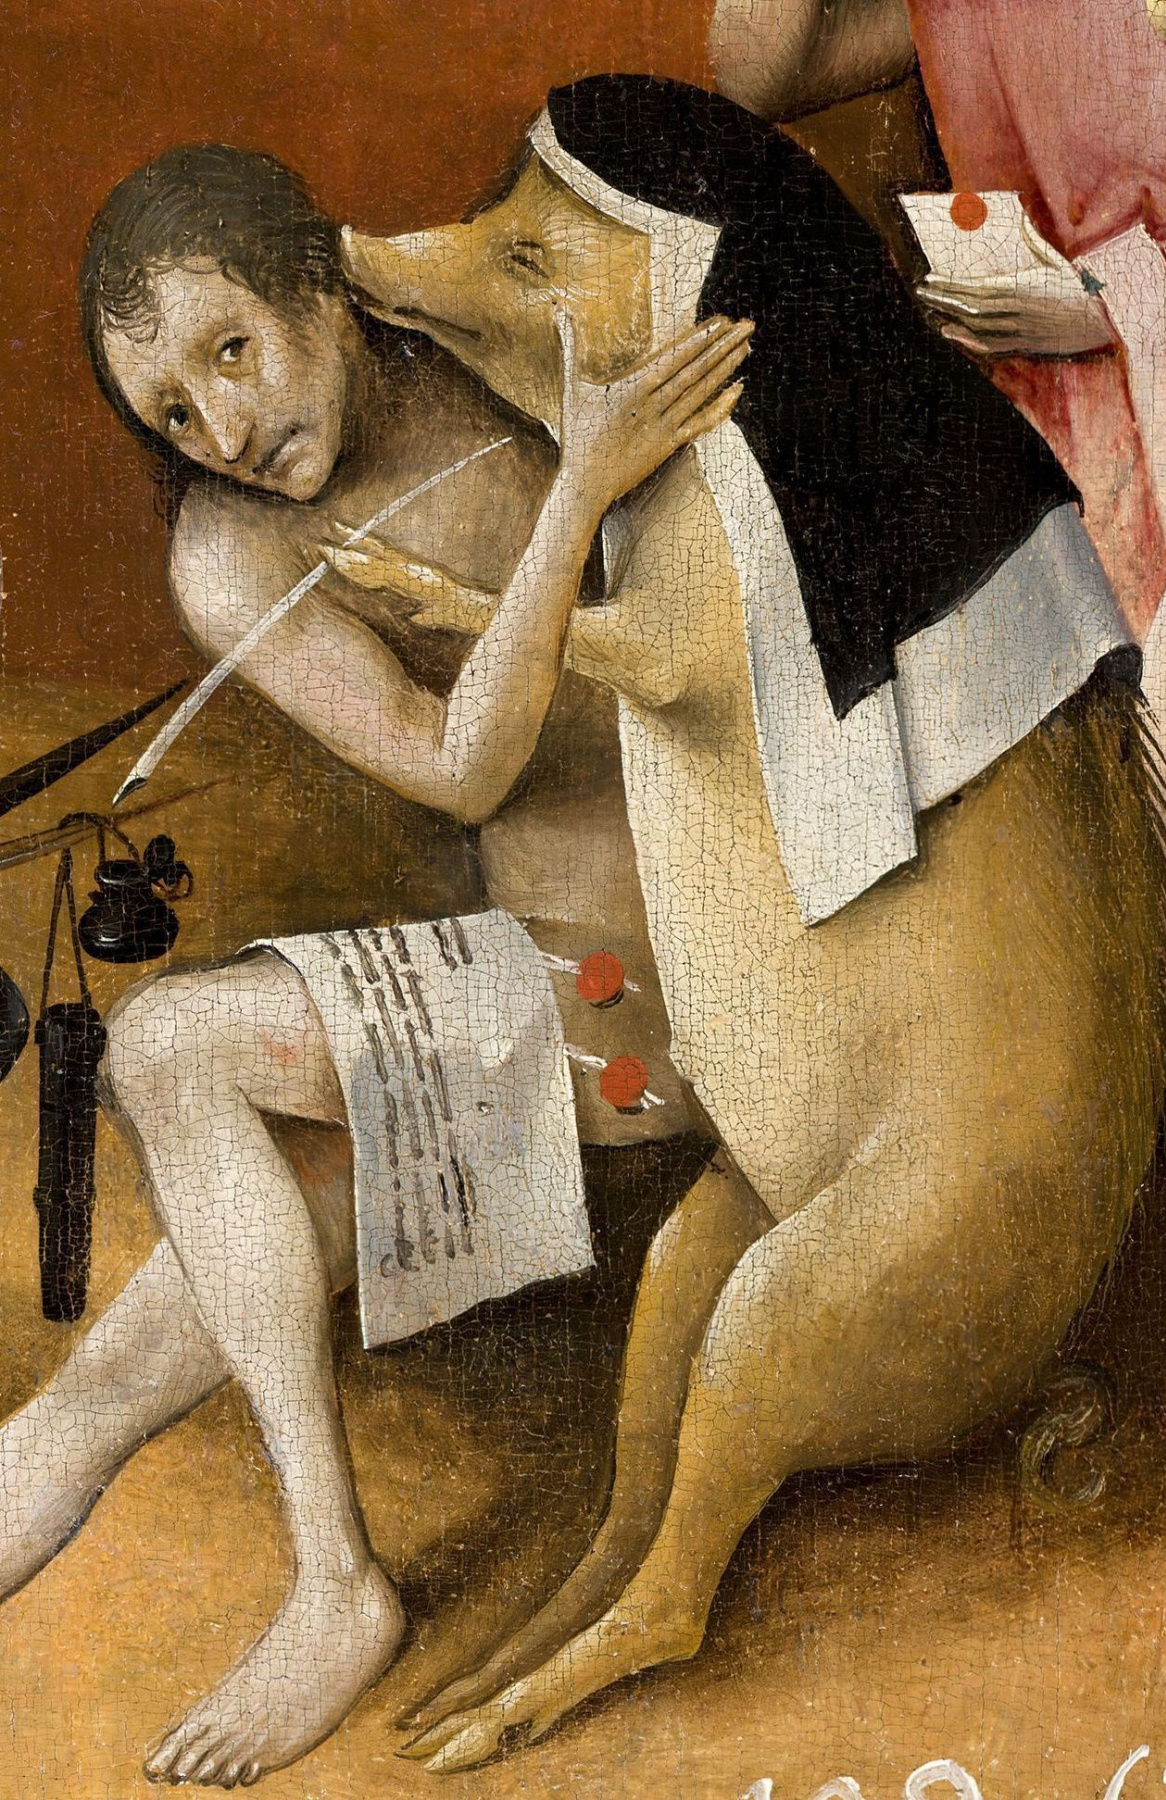 Hieronymus Bosch. The garden of earthly delights. Right wing. Fragment